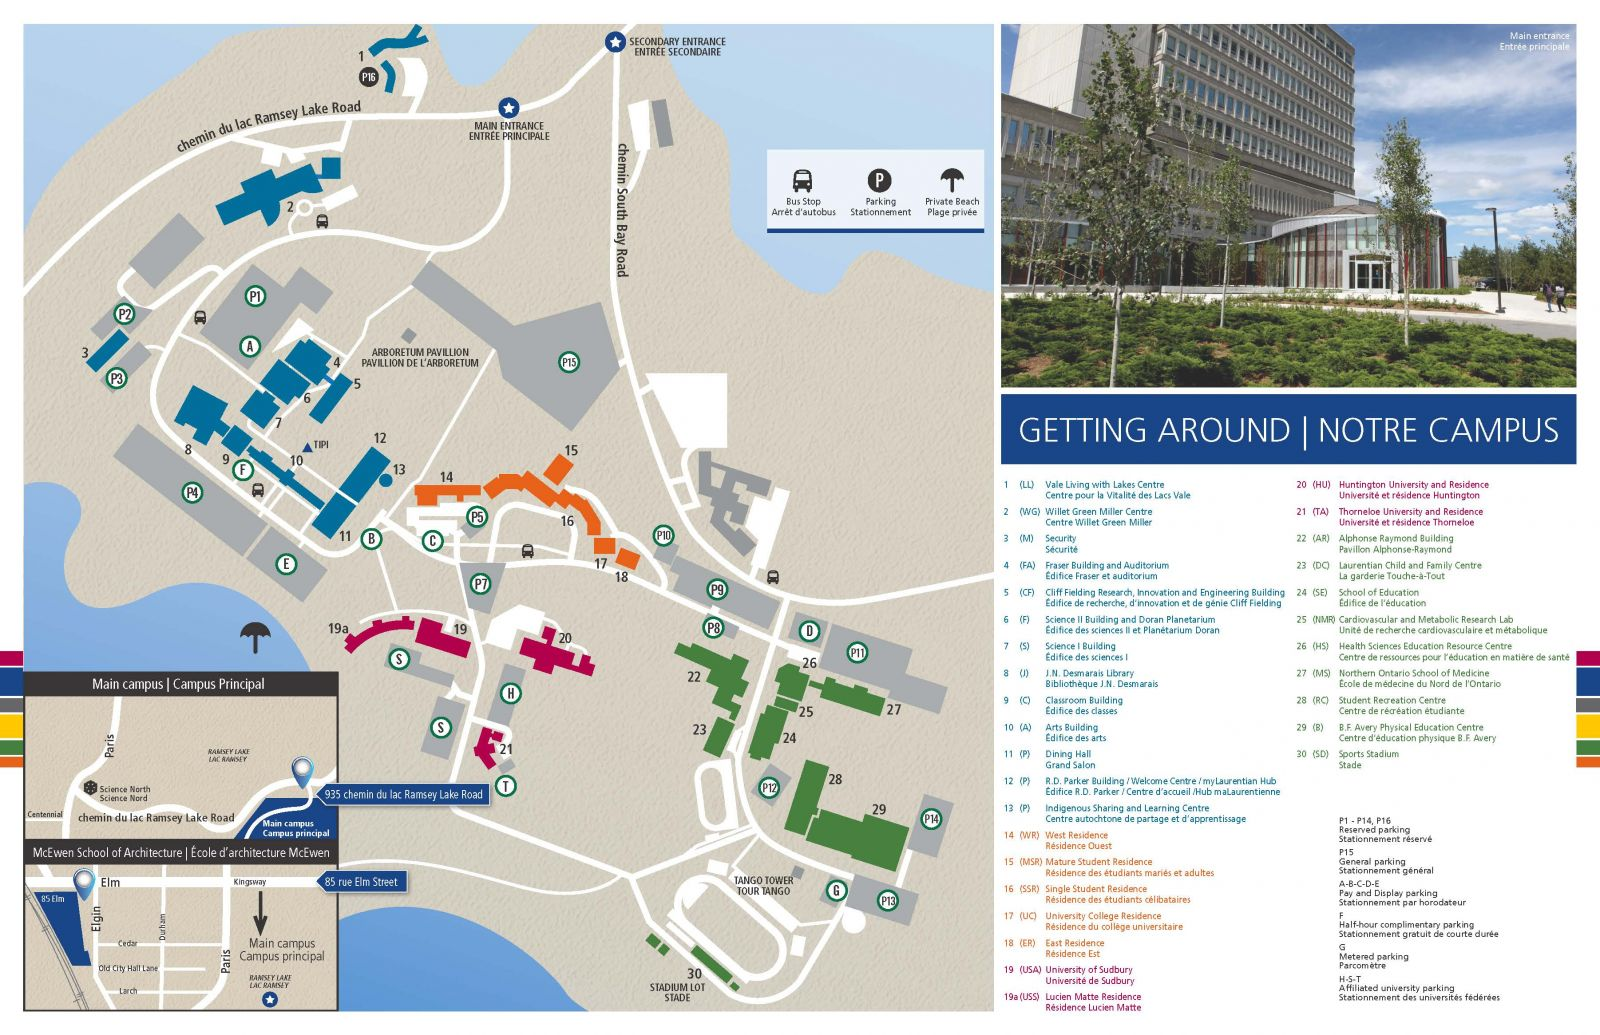 Millikin University Campus Map.Uni Campus Map Www Topsimages Com